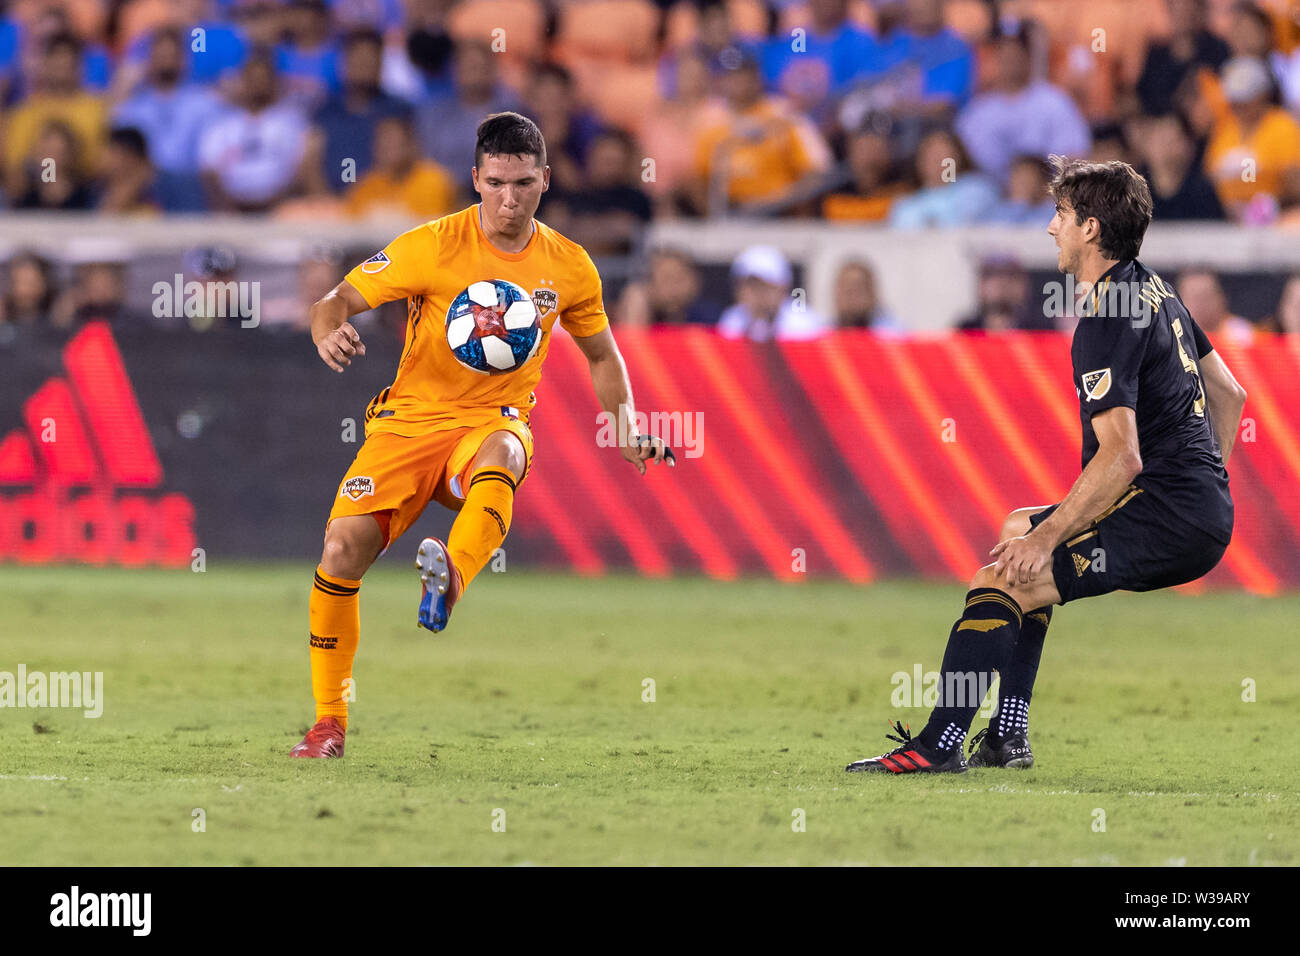 Houston, Texas, USA. 12th July, 2019. Houston Dynamo midfielder Tomas Martinez (10) looks to control the ball during a match between Los Angeles FC and Houston Dynamo at BBVA Stadium in Houston, Texas. The final LAFC wins 3-1. Maria Lysaker/CSM/Alamy Live News - Stock Image